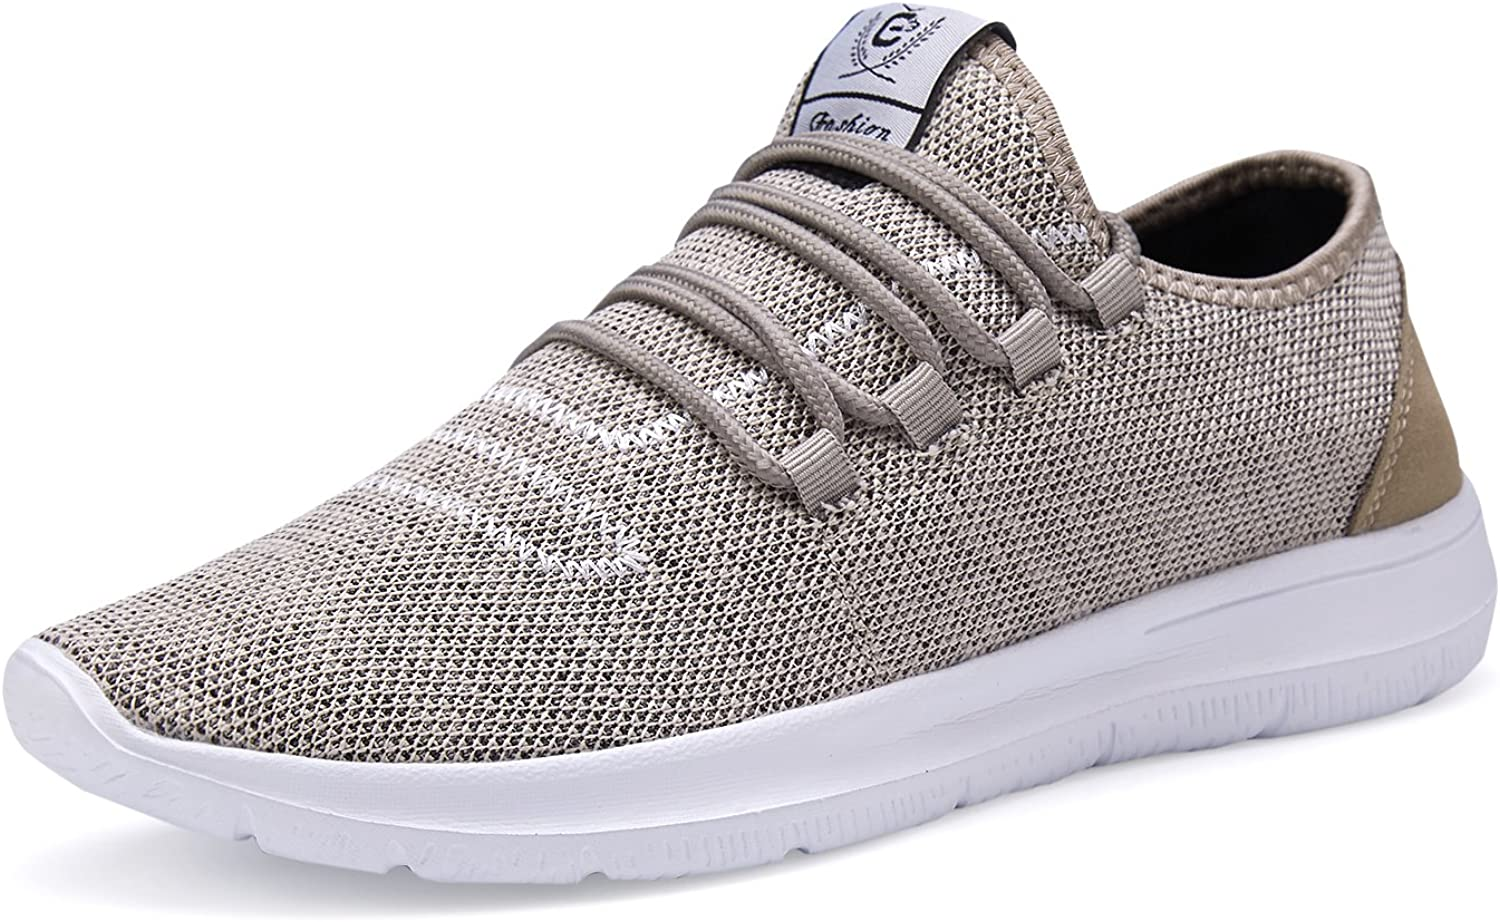 ZBXXMQZZ Men's Running shoes Lightweight Breathable Mesh Casual shoes Fashion Sneakers Walking shoes